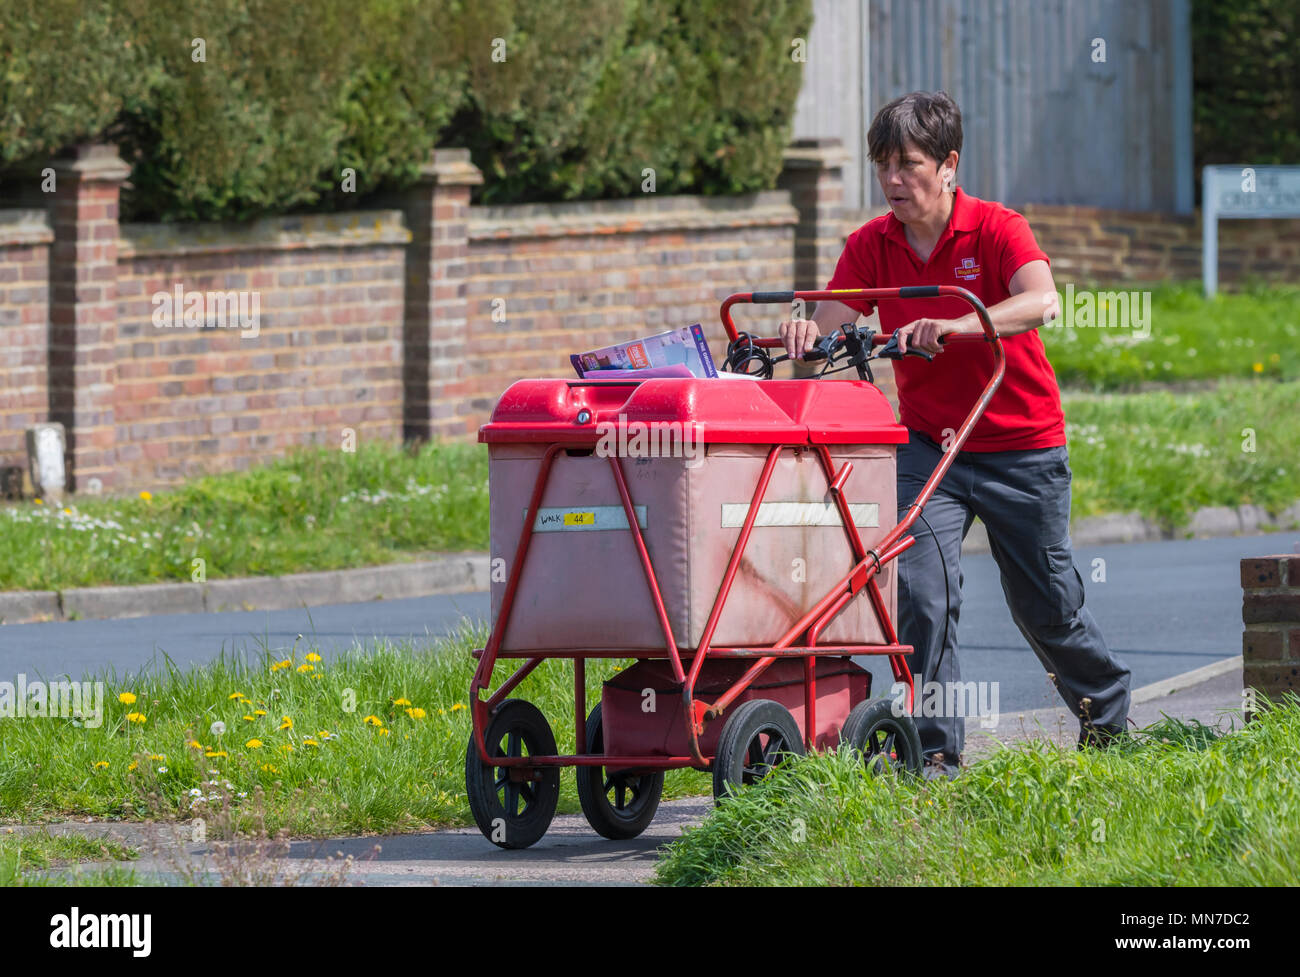 Woman pushing a Royal Mail cart while delivering letters and post in England, UK. - Stock Image